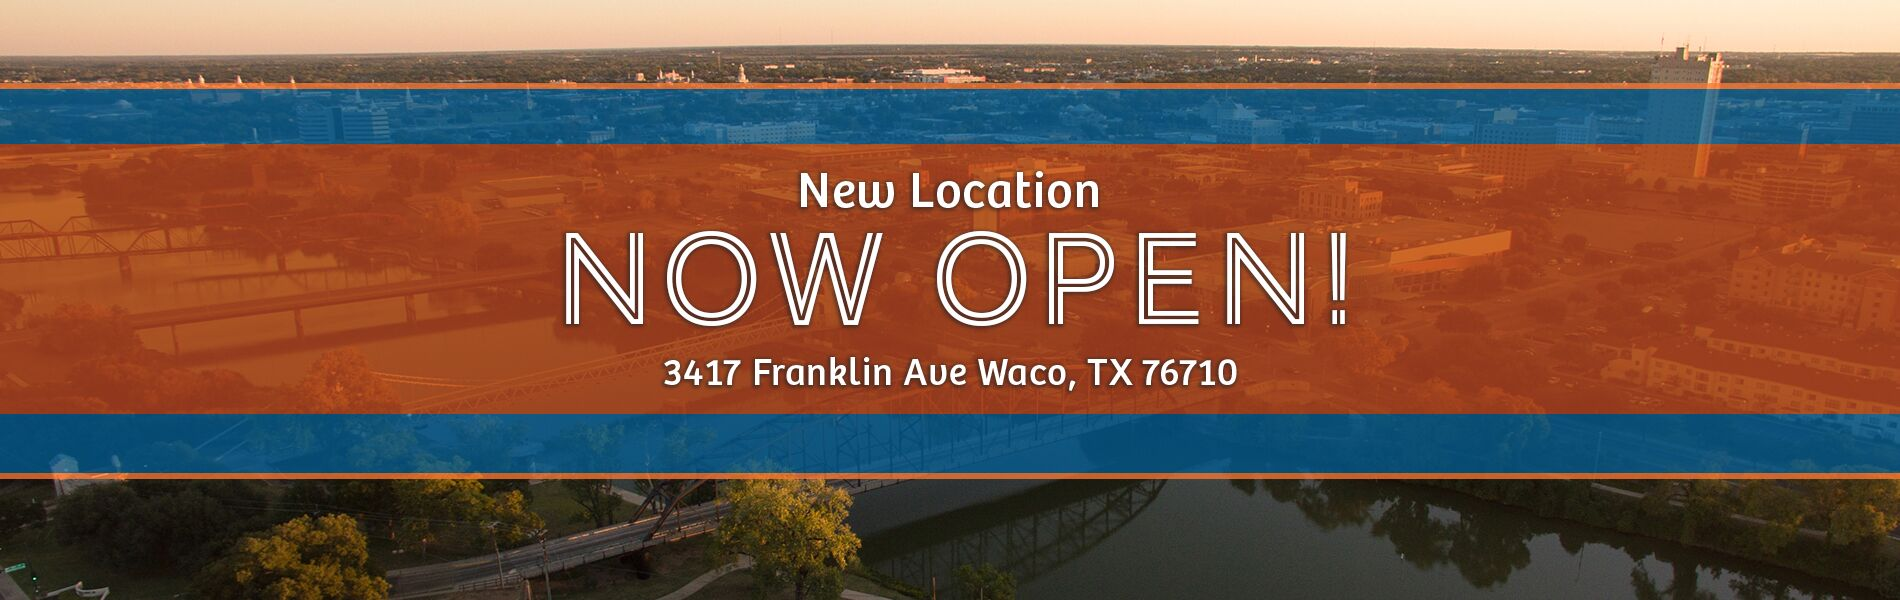 Waco Location Now Open